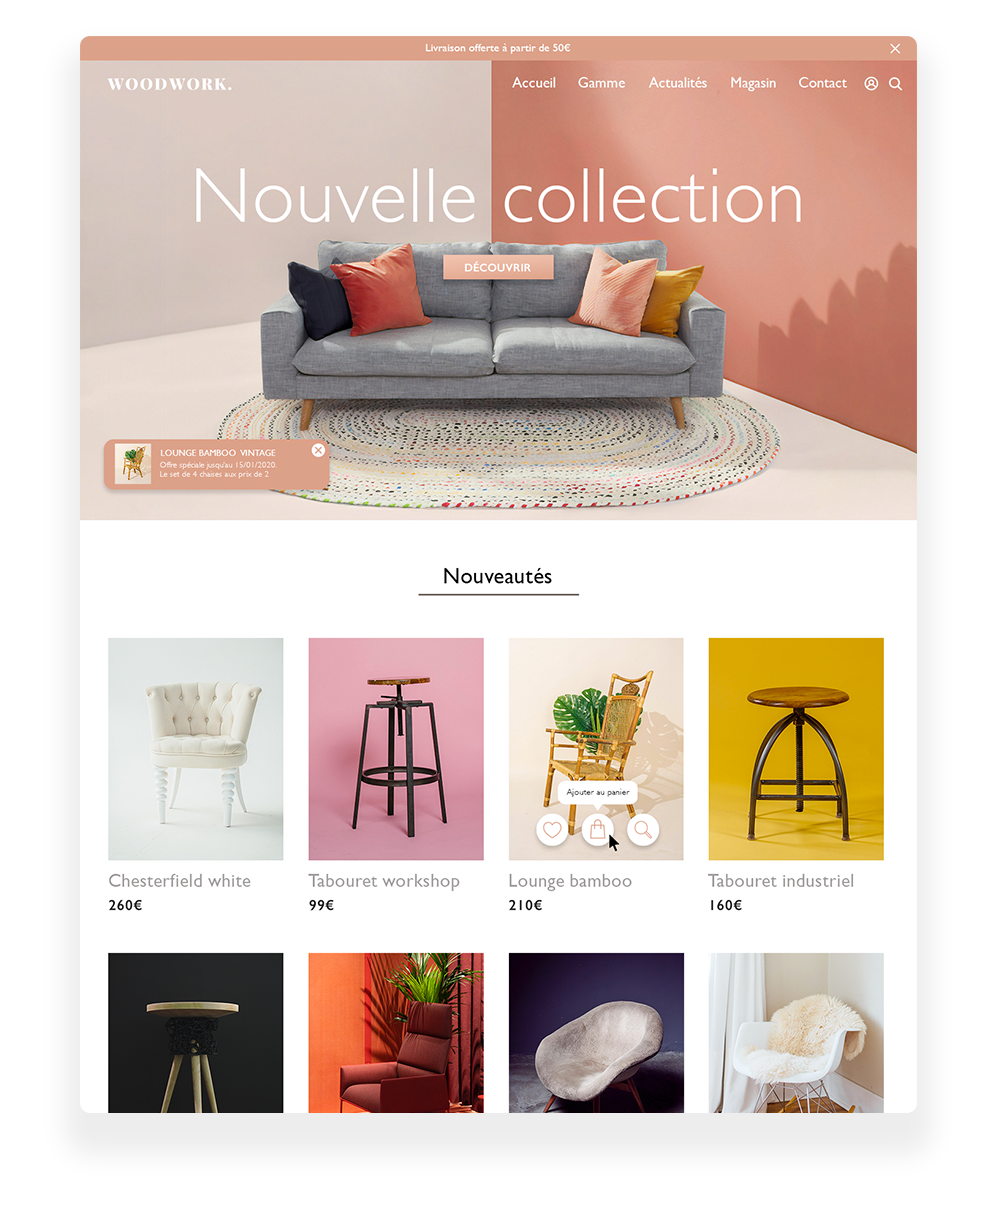 E-commerce+-furniture-shop